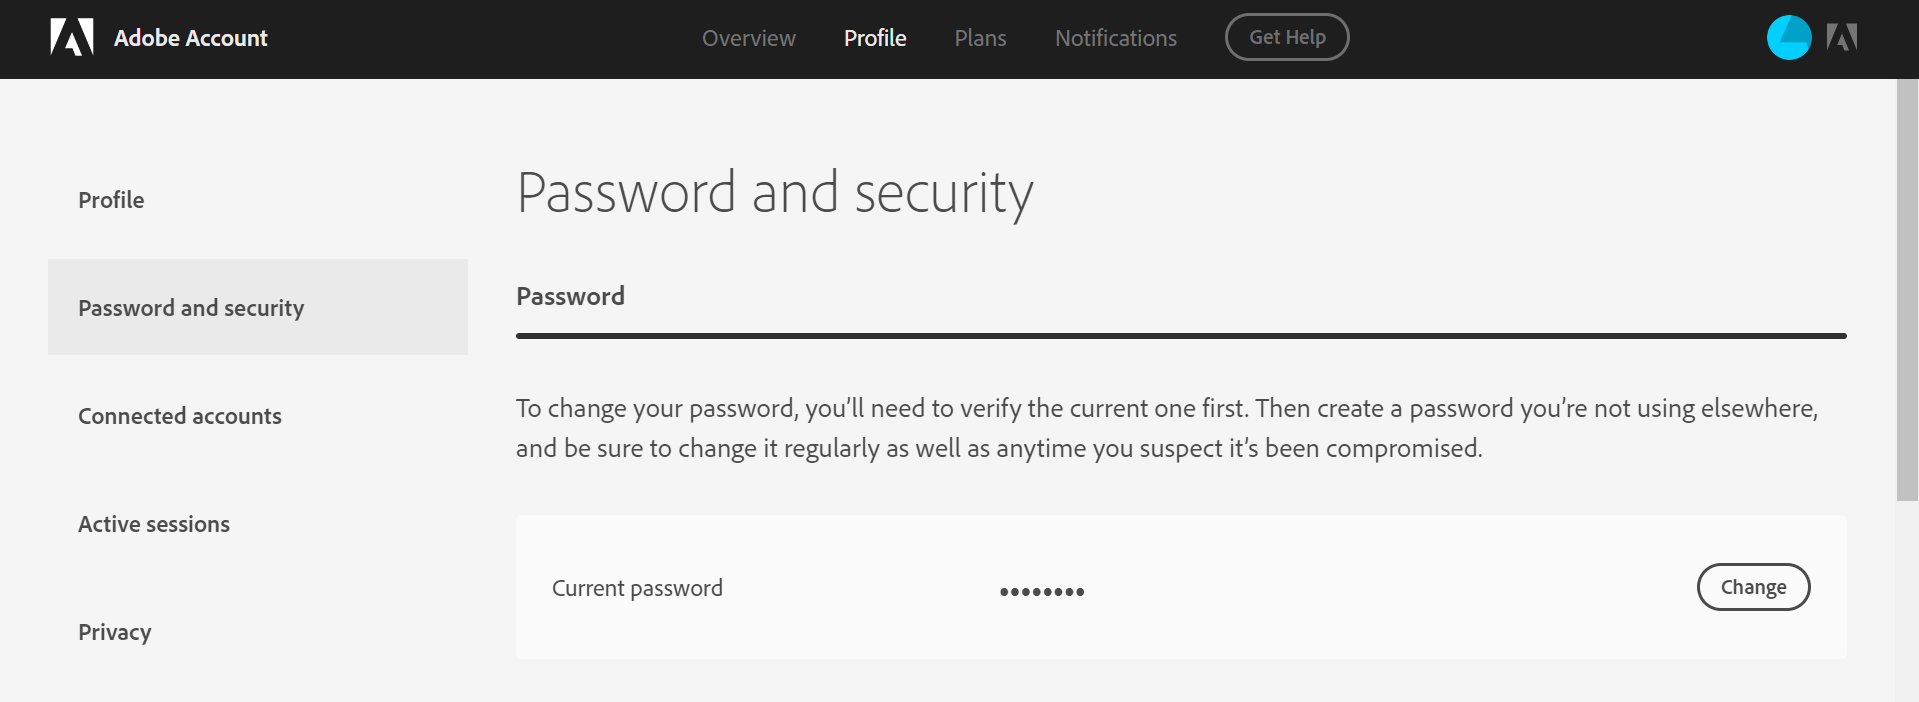 Password and security screen